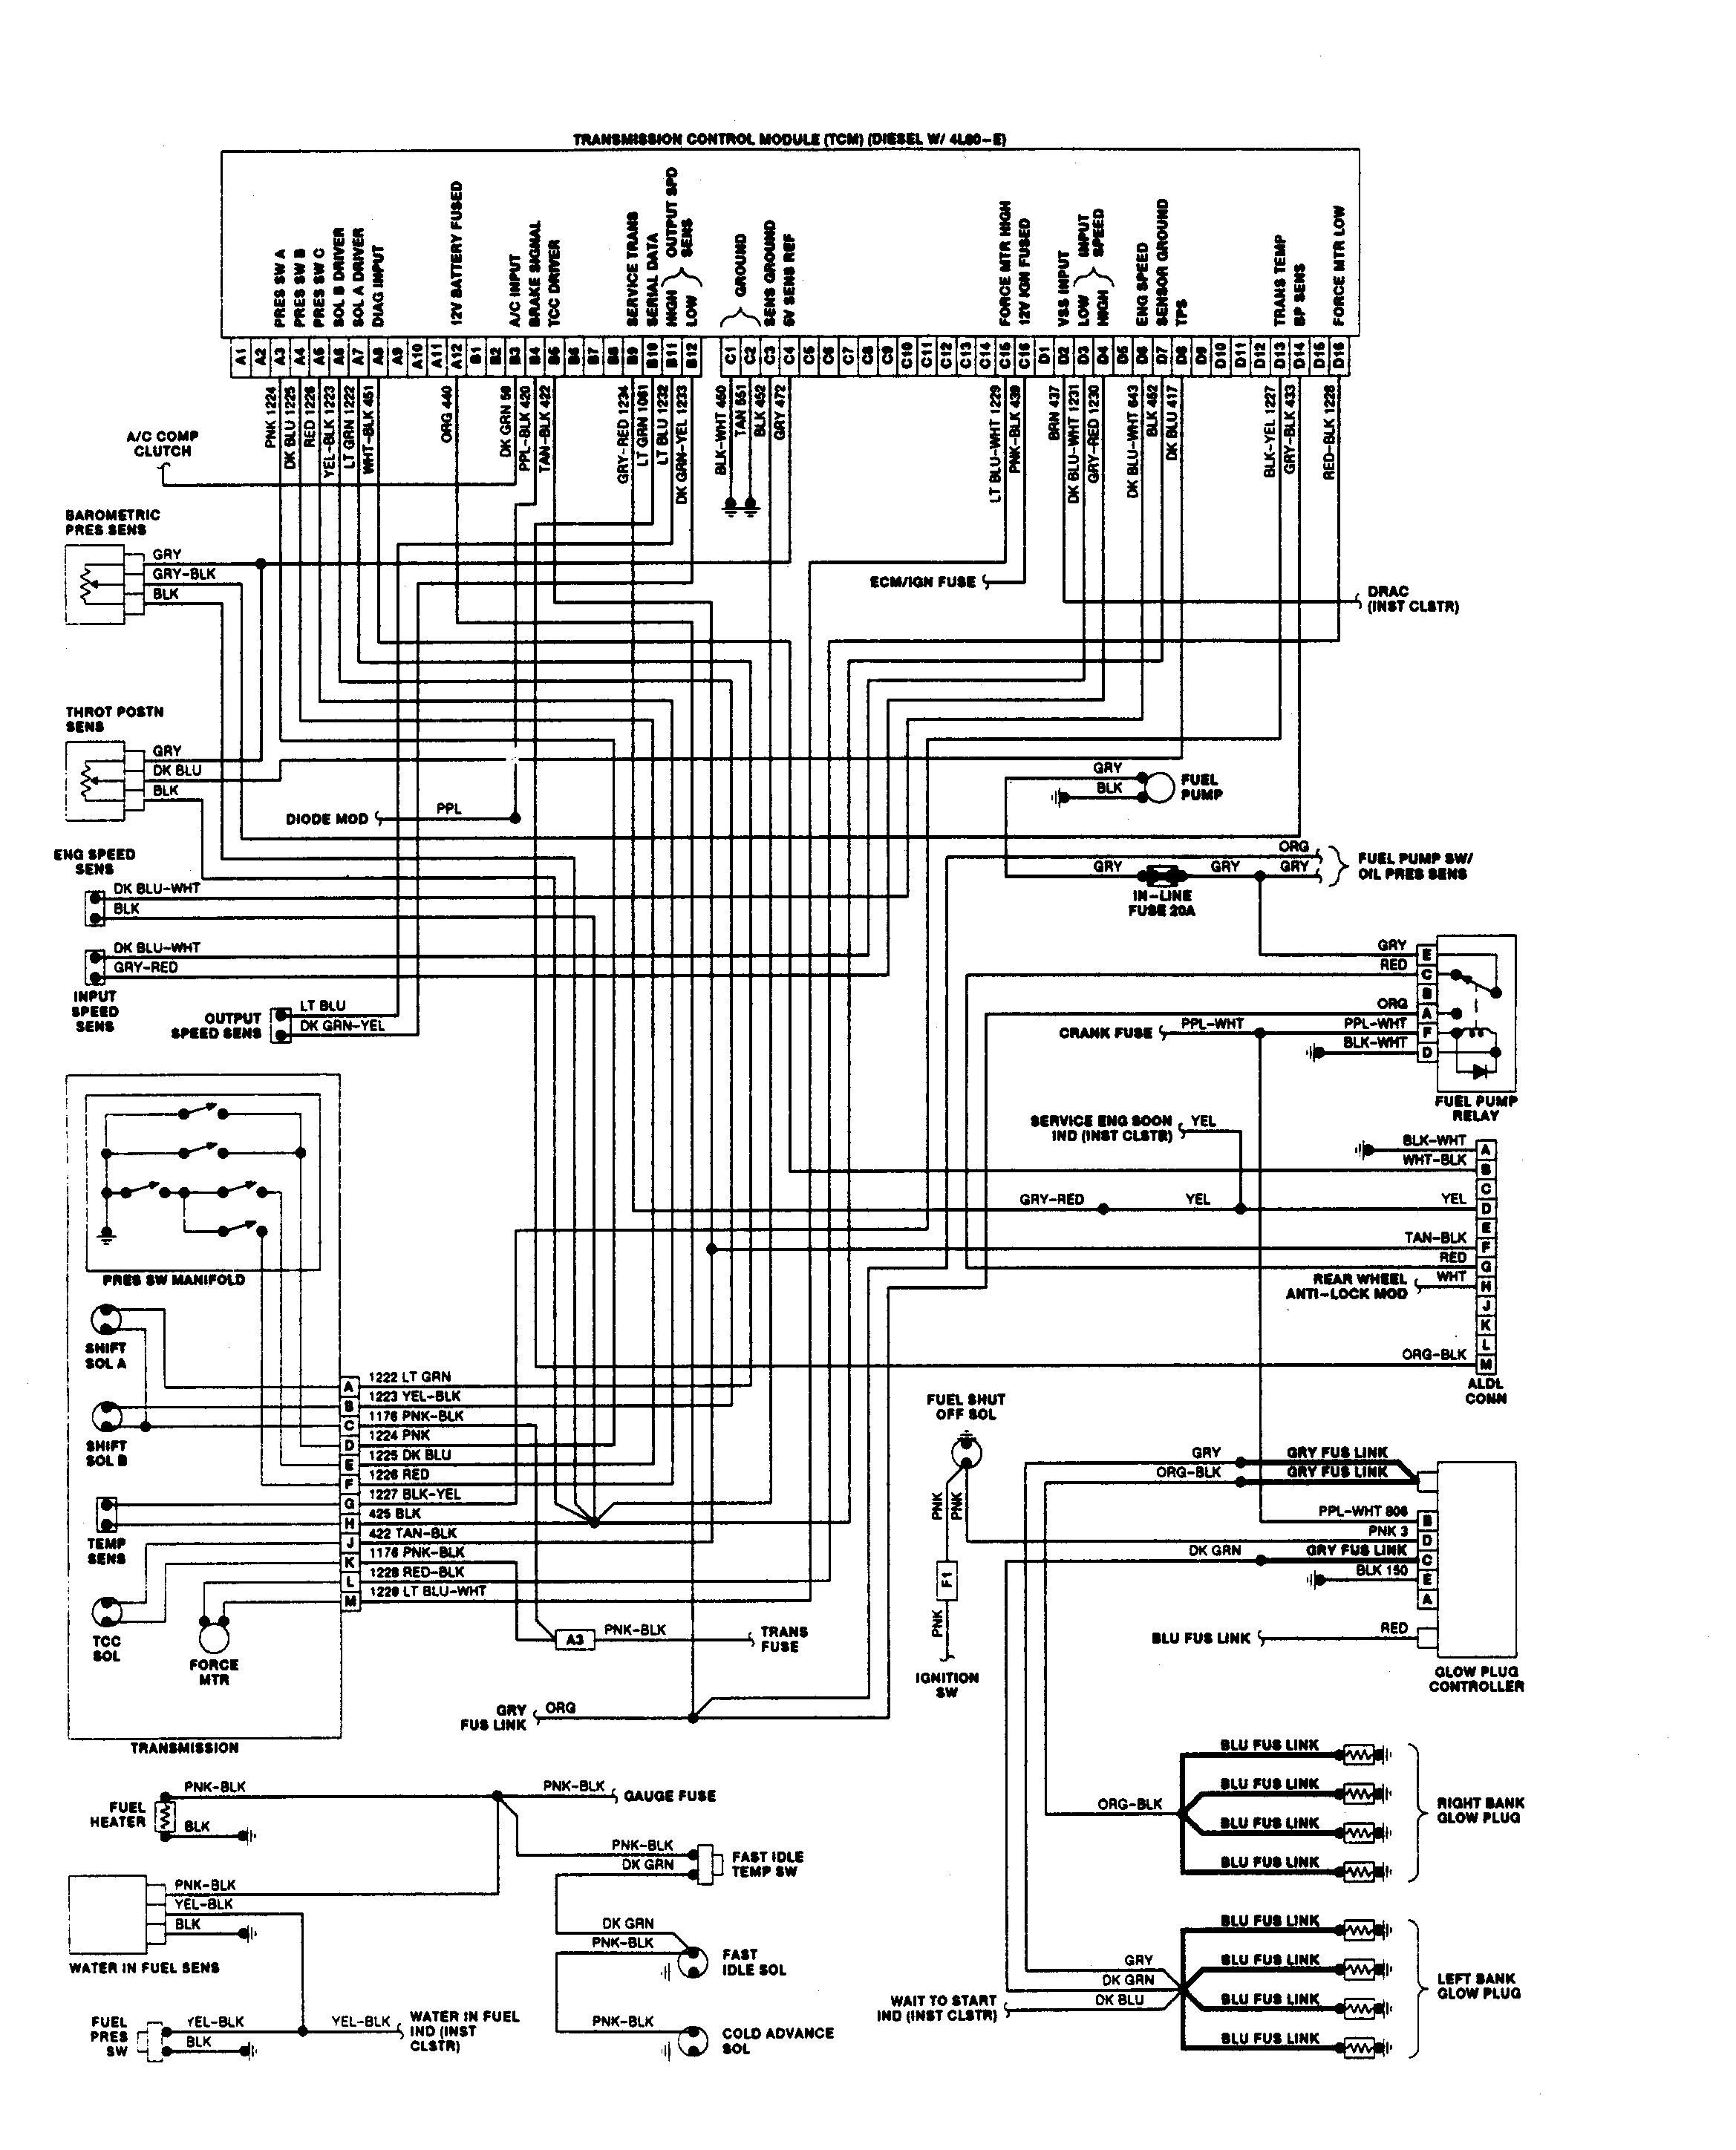 chevy p30 motorhome wiring diagram 1991 chevy p30 wiring diagrams | wiring diagrams ... #1